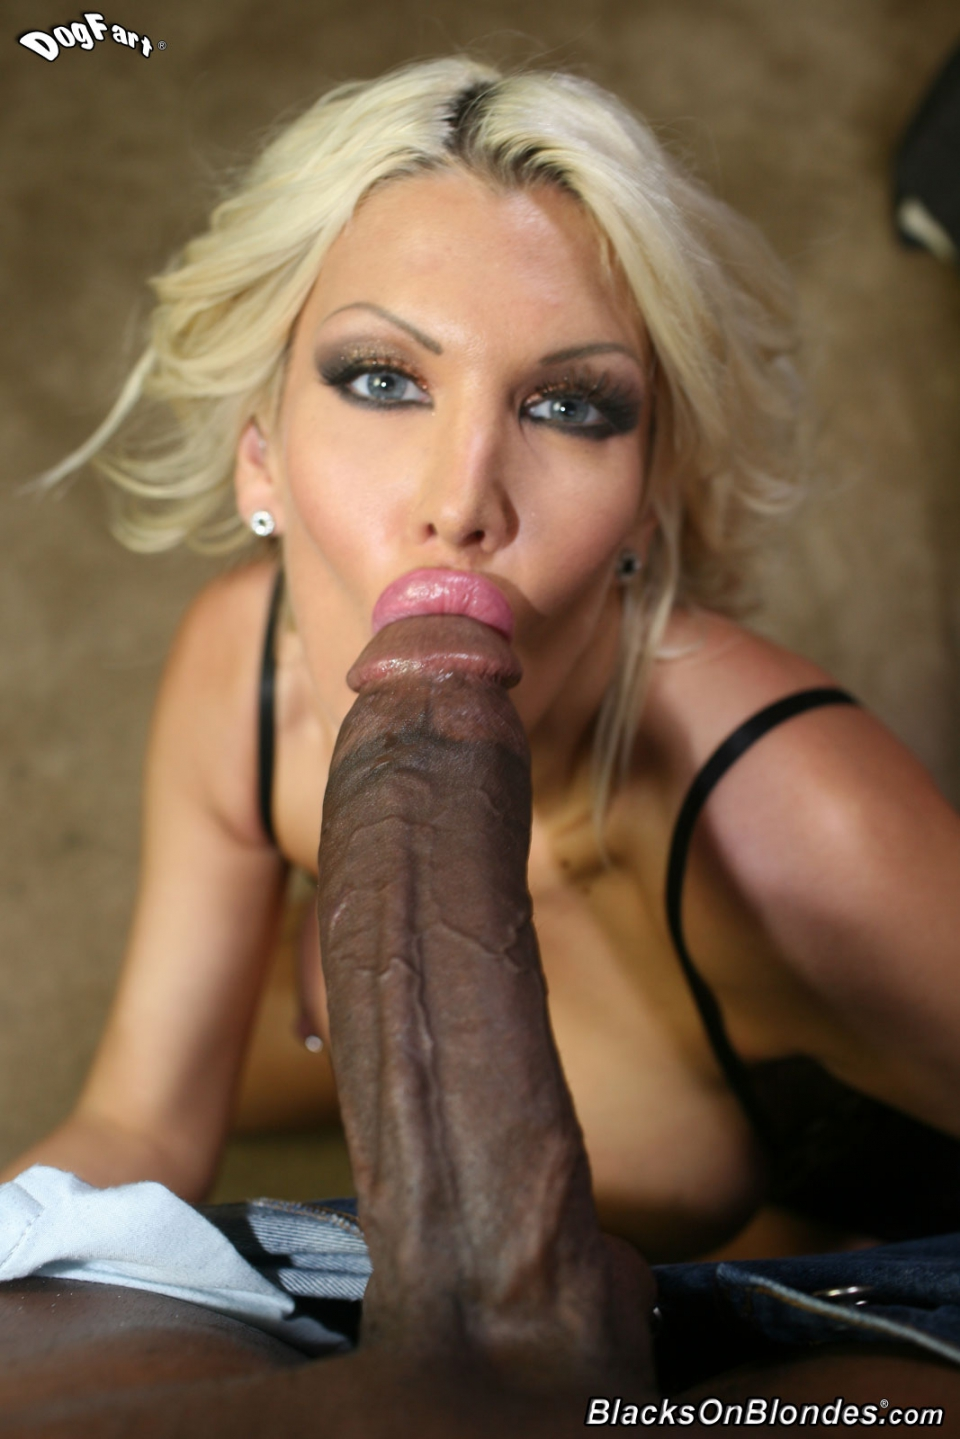 Big lips black girlfriend porn